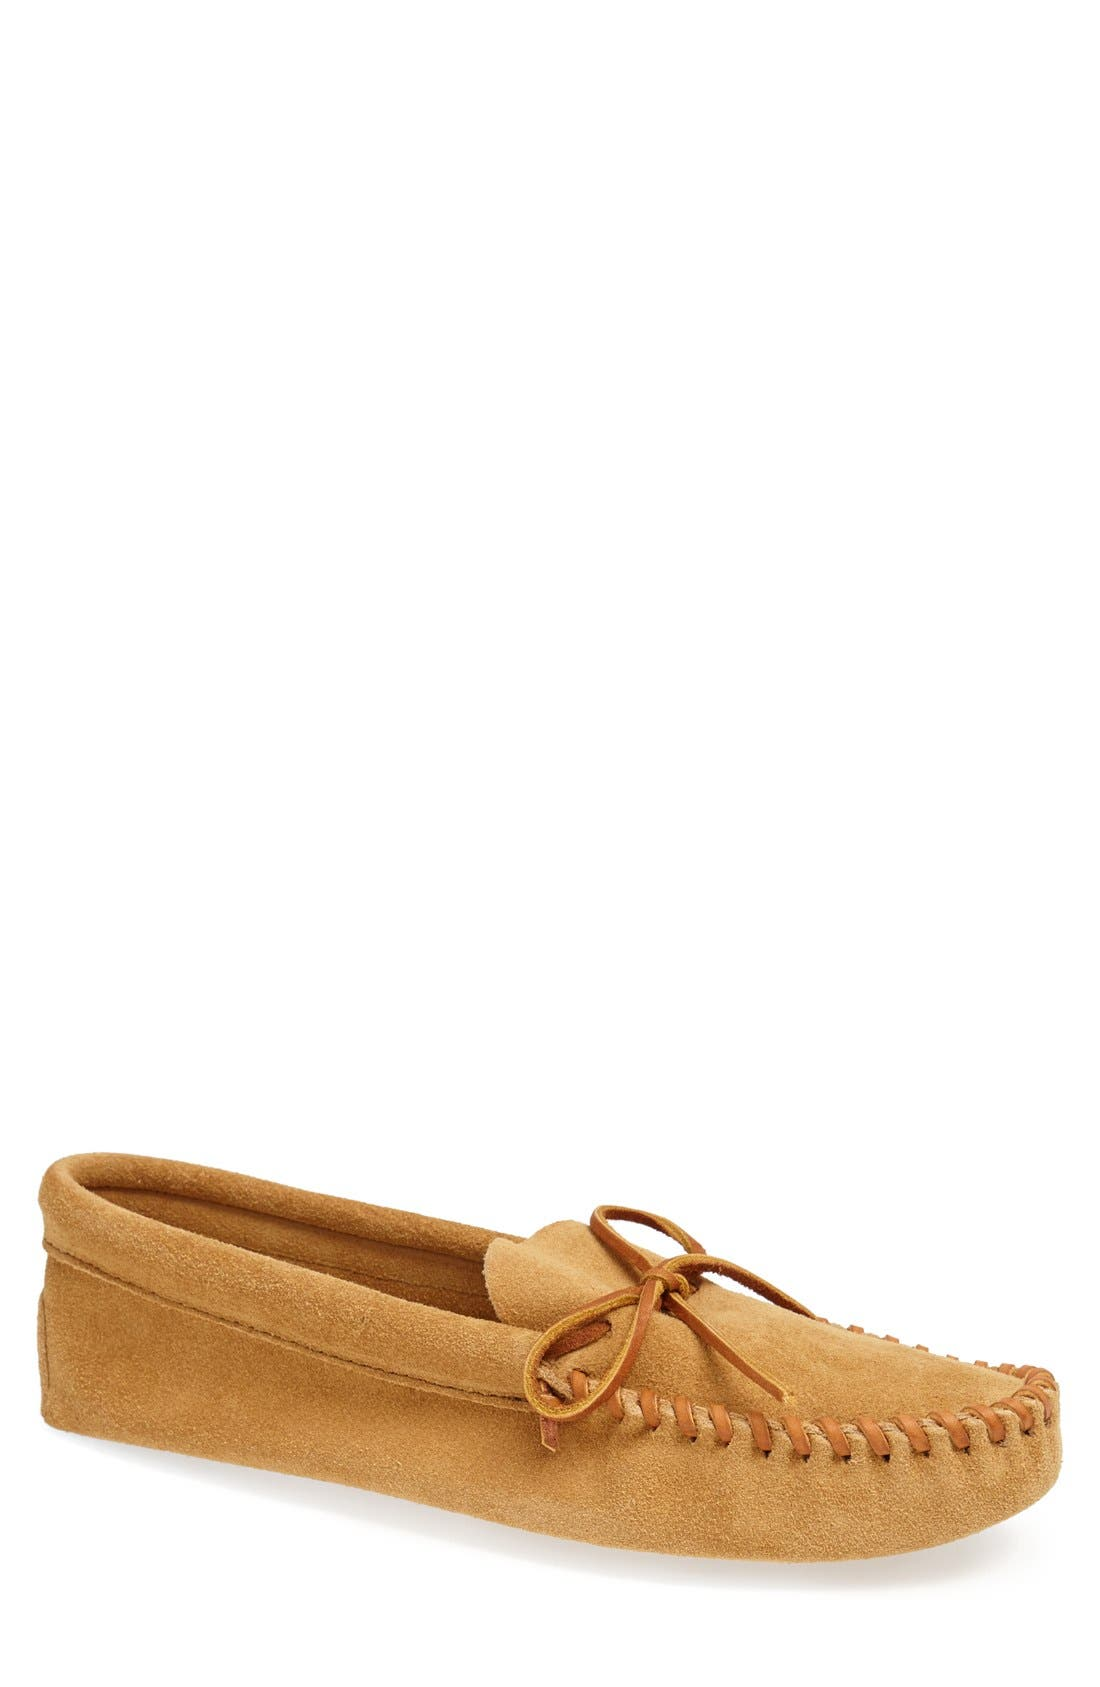 Alternate Image 1 Selected - Minnetonka Suede Moccasin